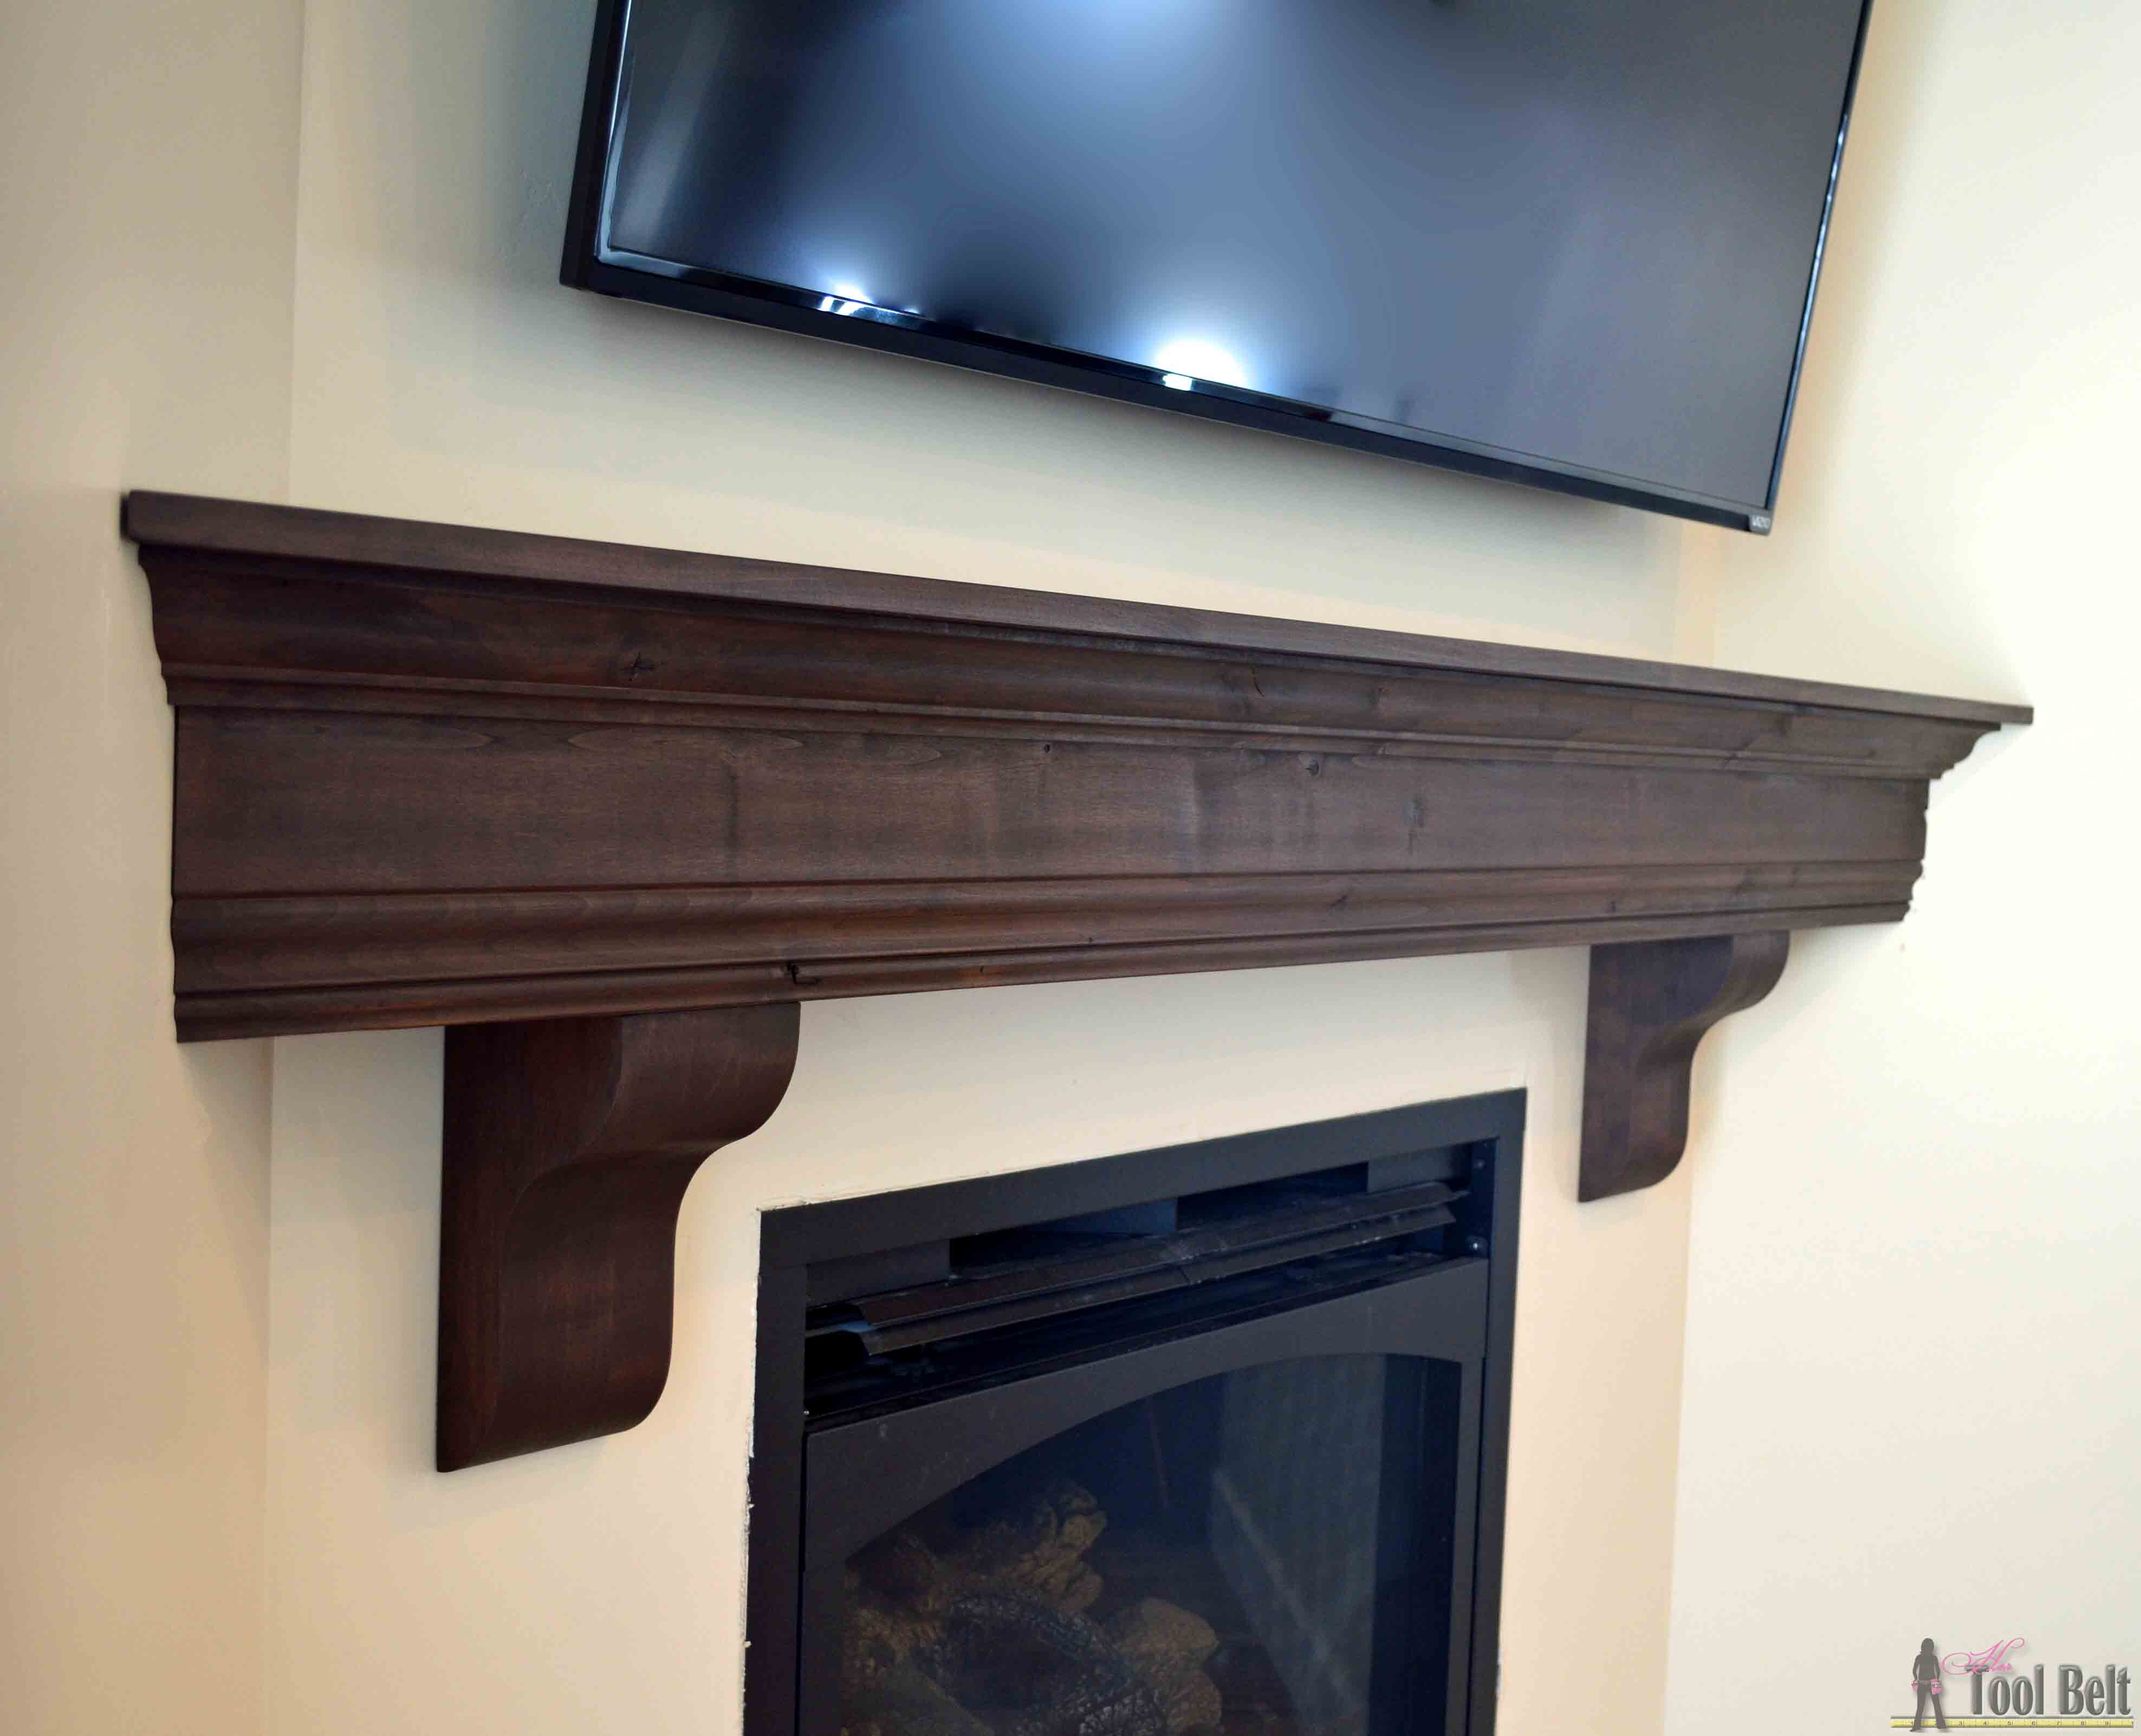 Diy fireplace mantel shelf her tool belt for How to design a fireplace mantel